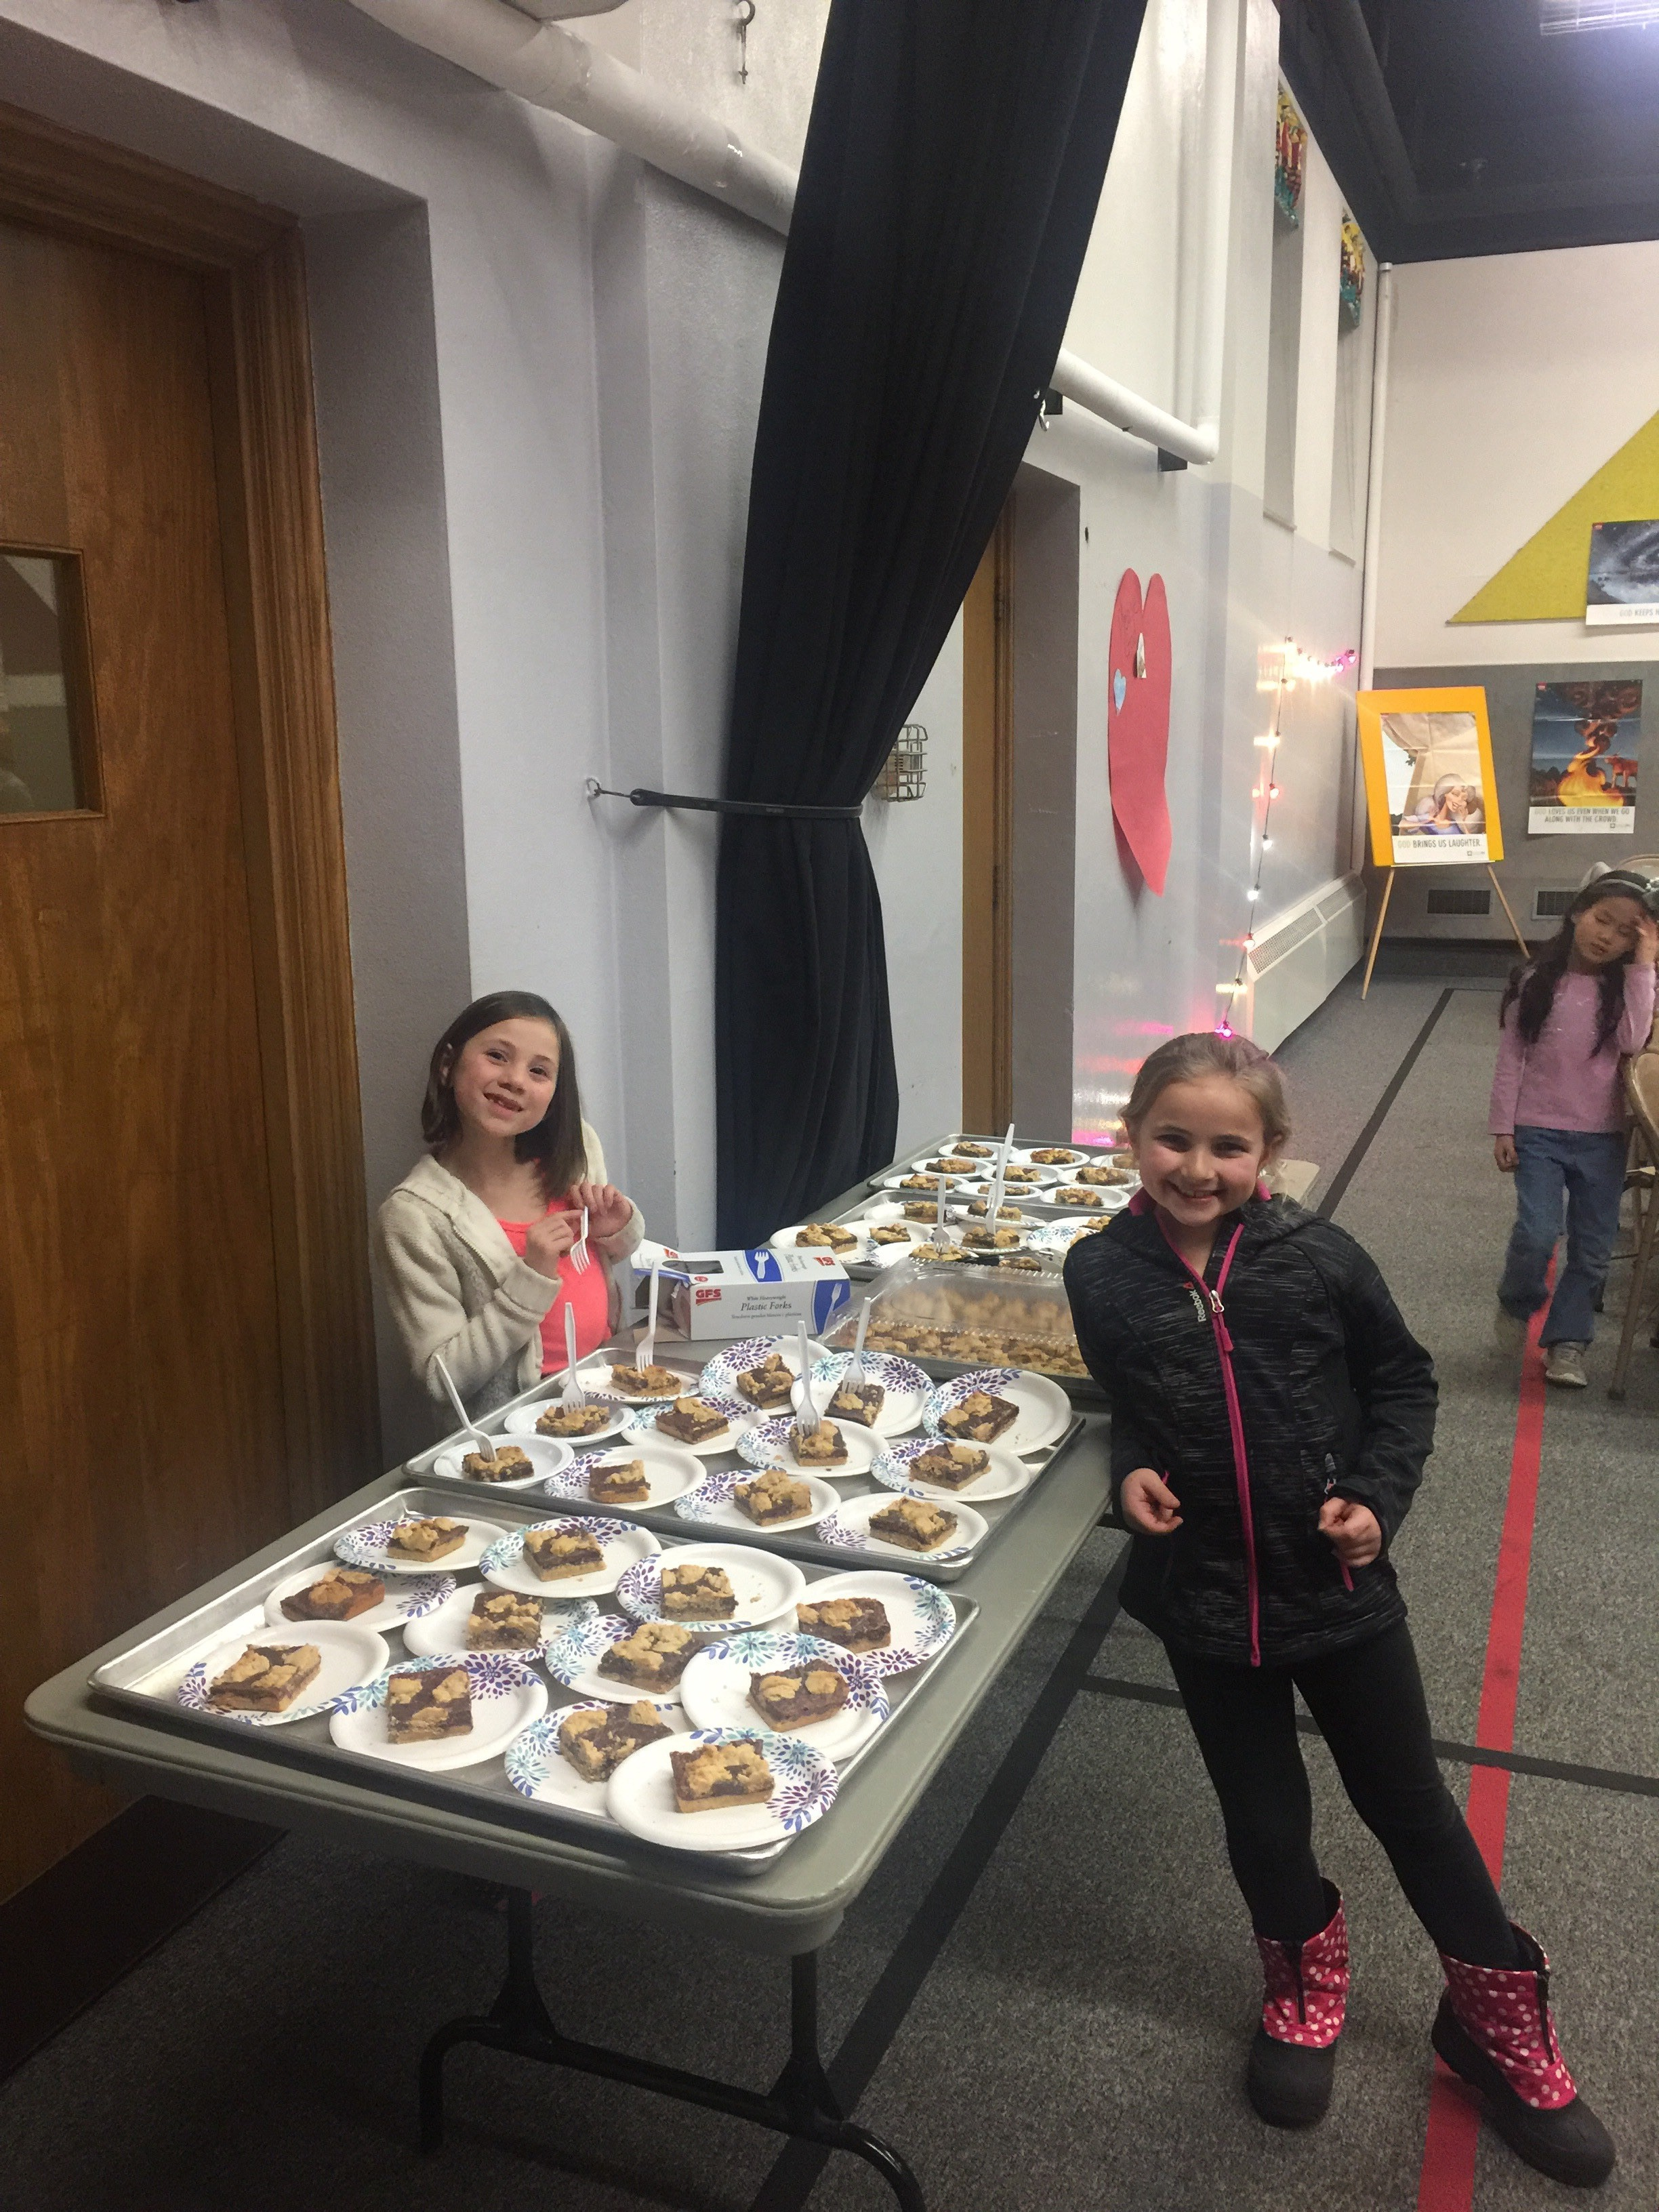 These two girls helped serve our dessert. What a wonderful thing to see!